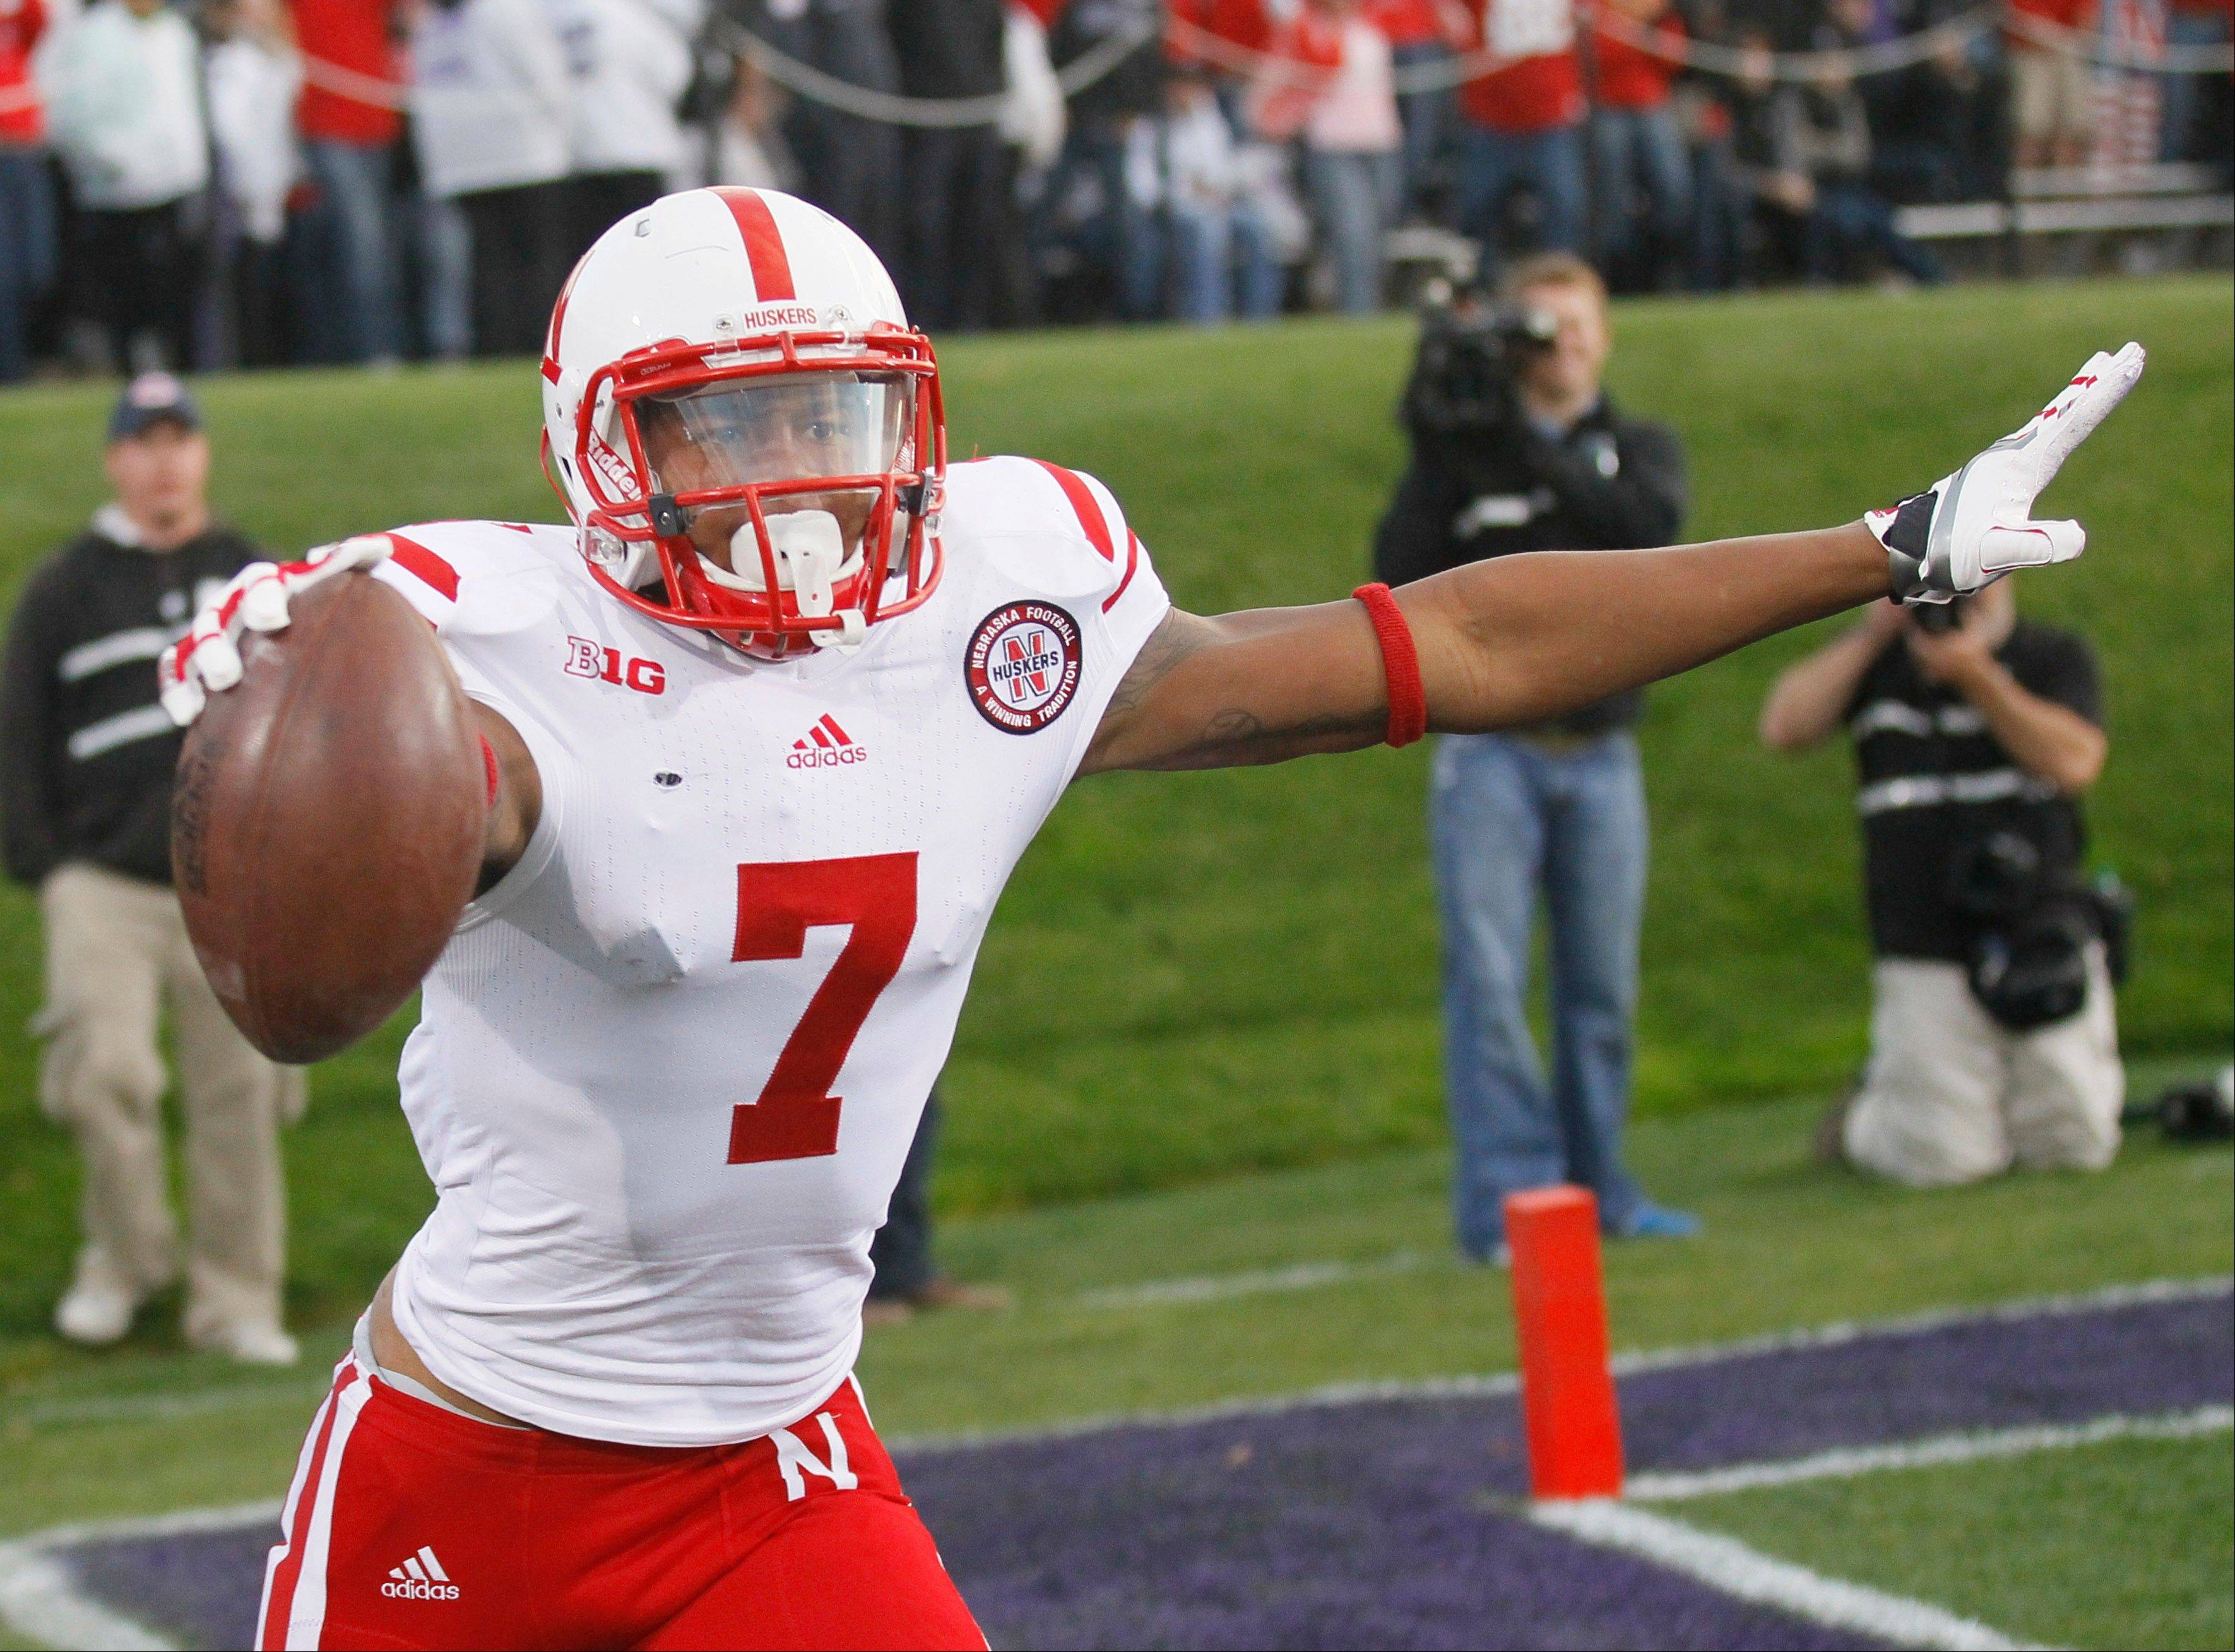 Nebraska wide receiver Taariq Allen (7) celebrates his touchdown catch from quarterback Taylor Martinez during the second half of an NCAA college football game against Northwestern, Saturday, Oct. 20, 2012, in Evanston. Nebraska won 29-28.